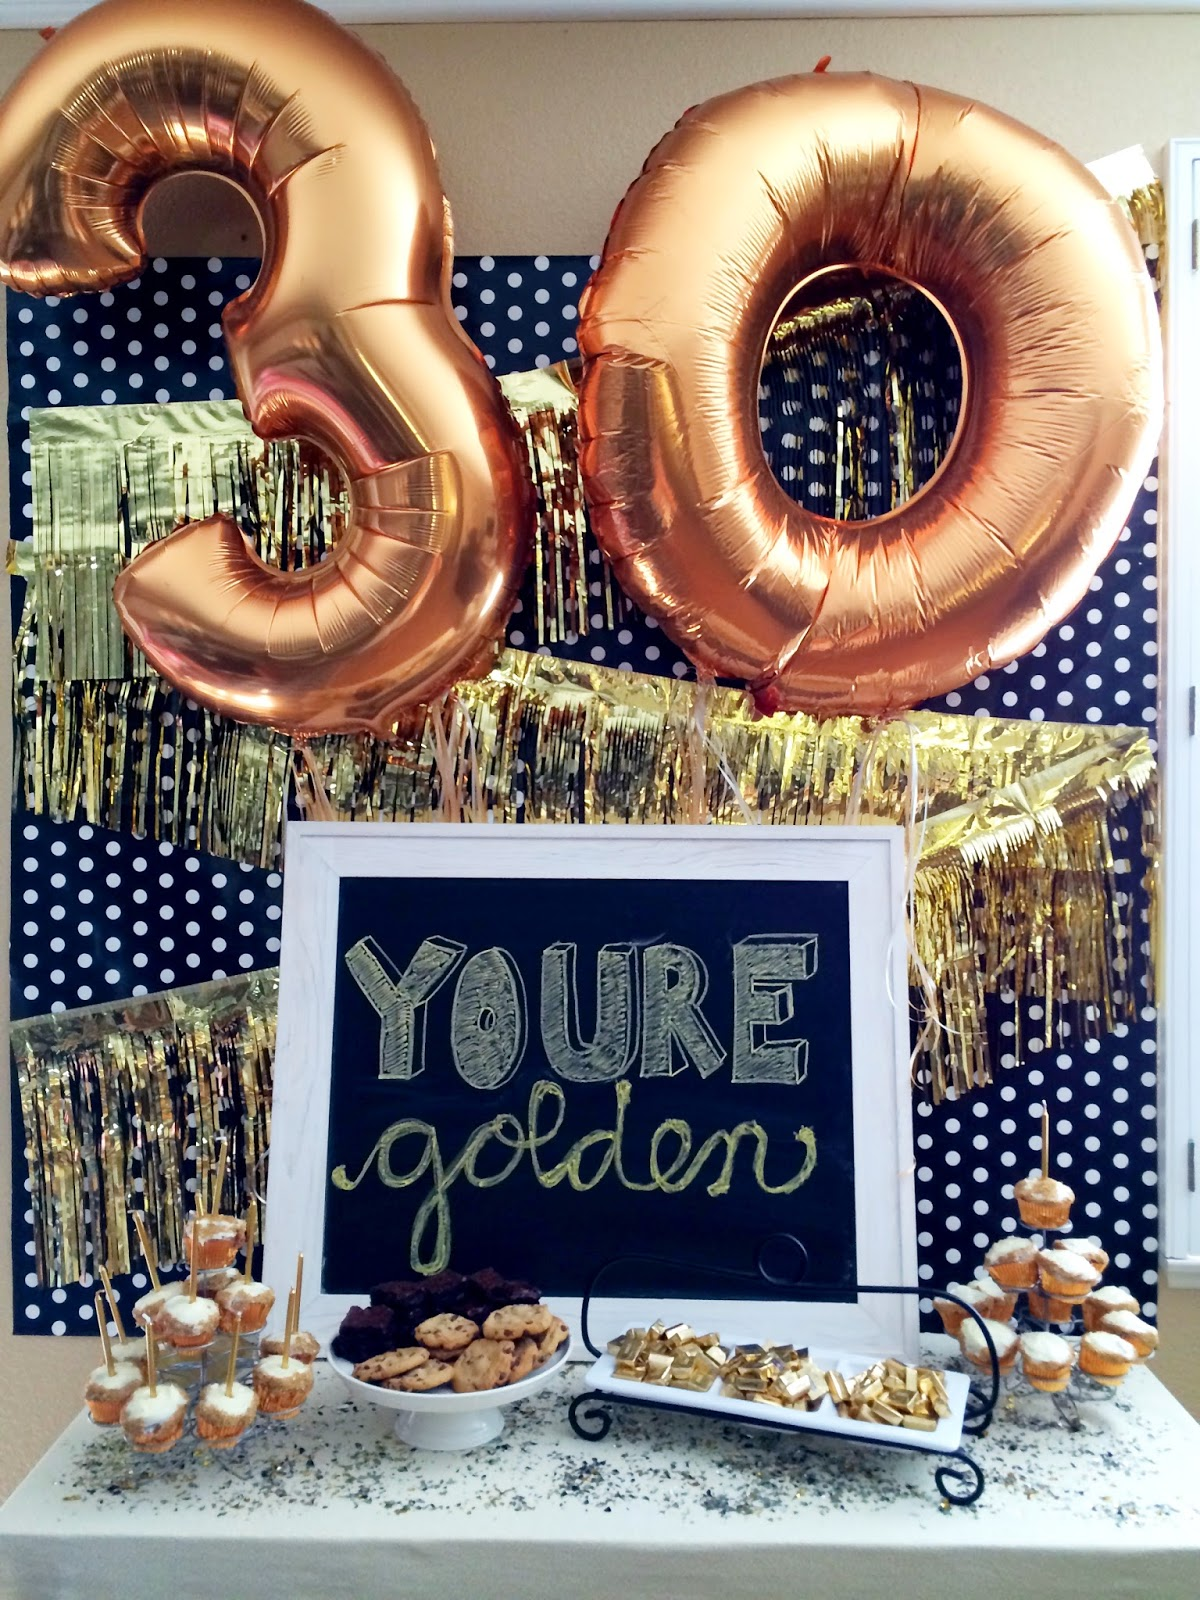 30th birthday picture ideas ; Youre-Golden